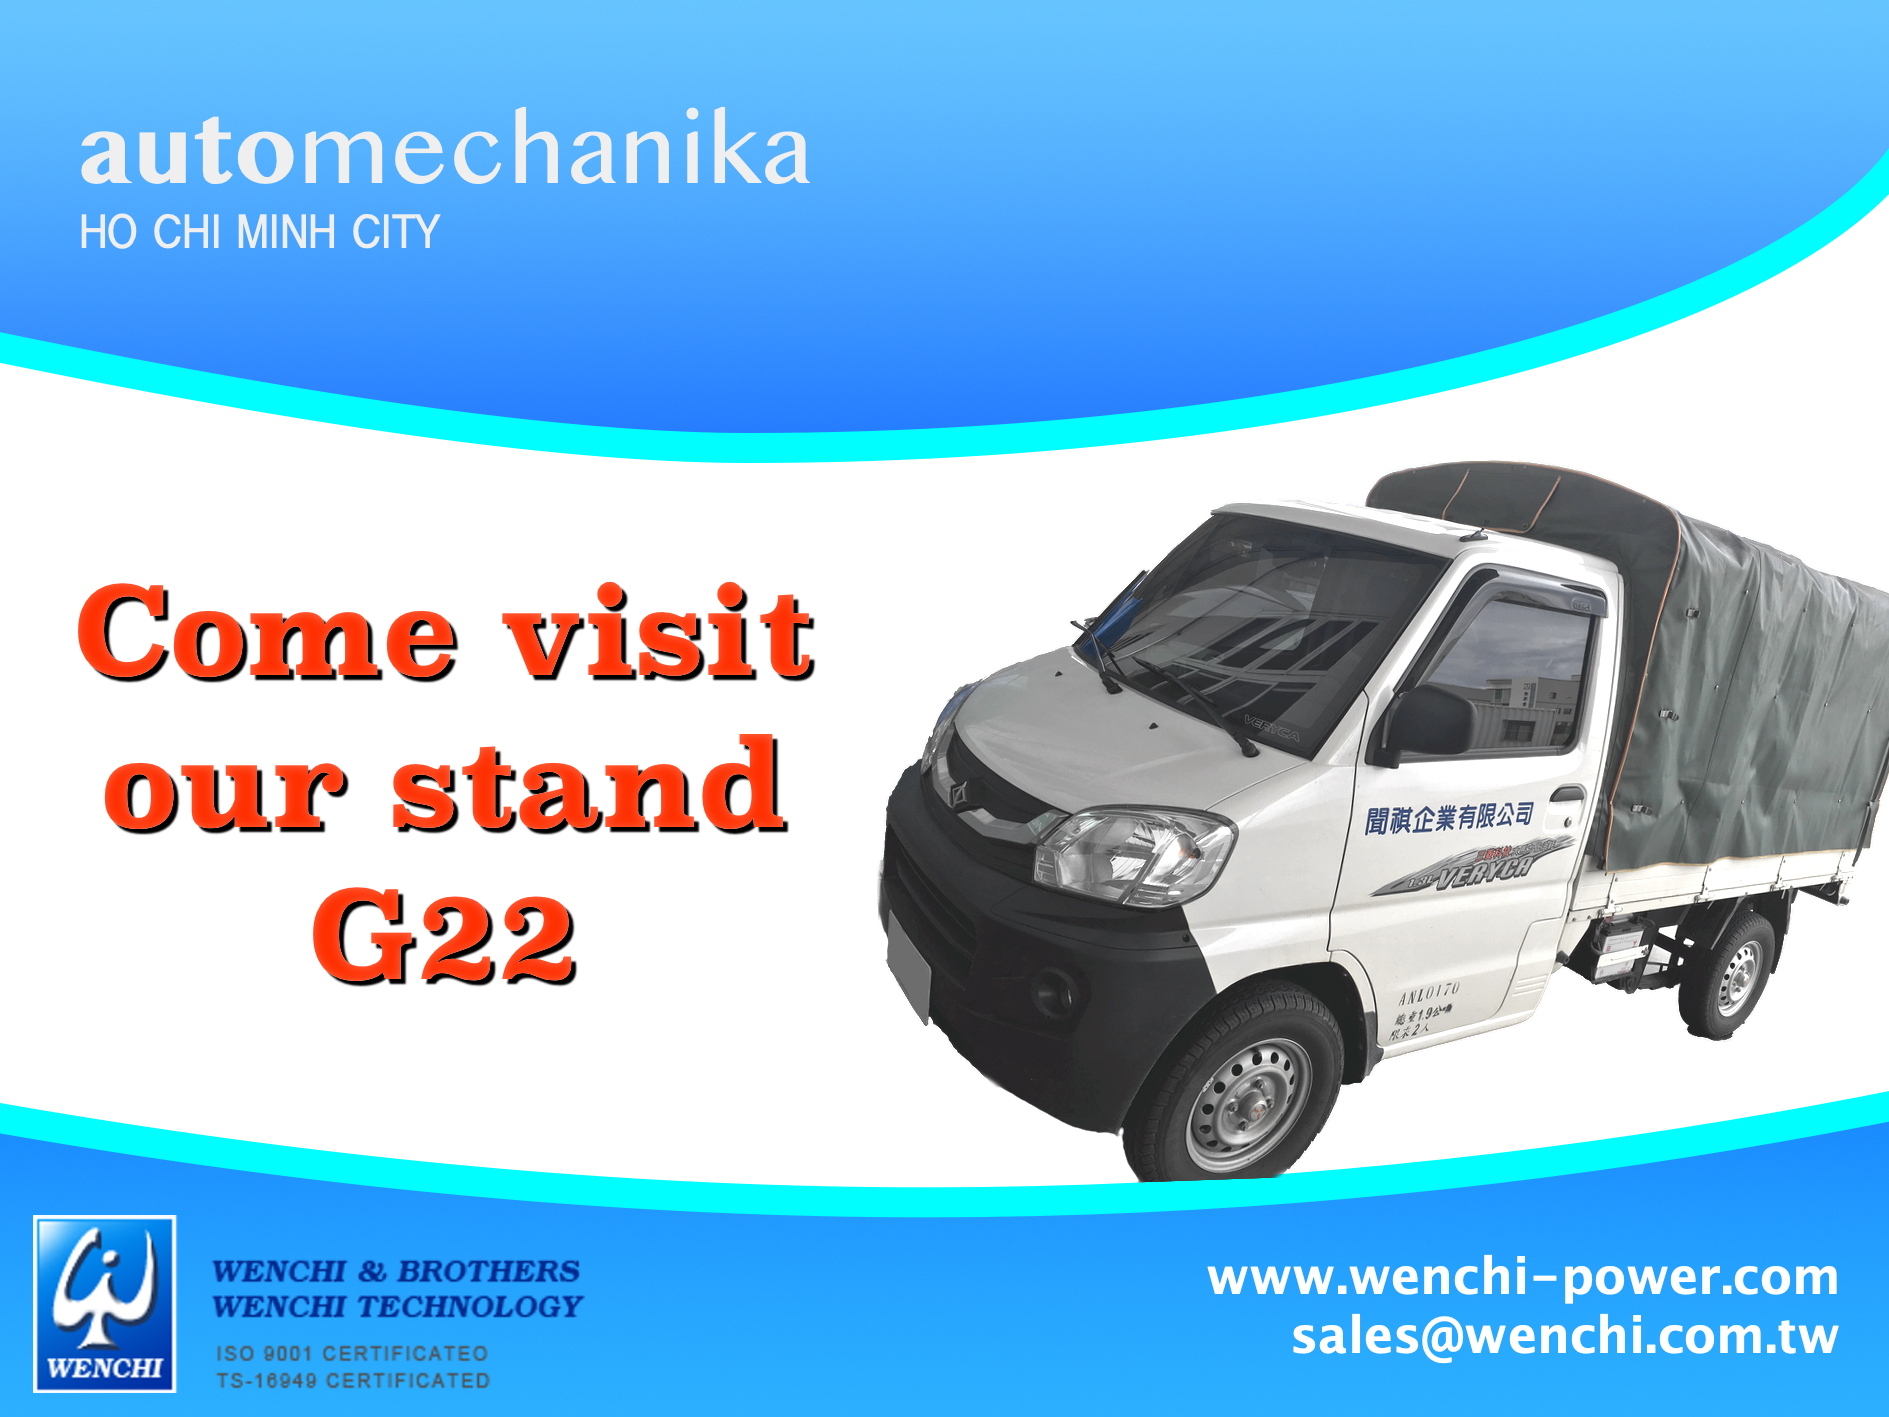 Wenchi automechanikaHCMC2019.jpg